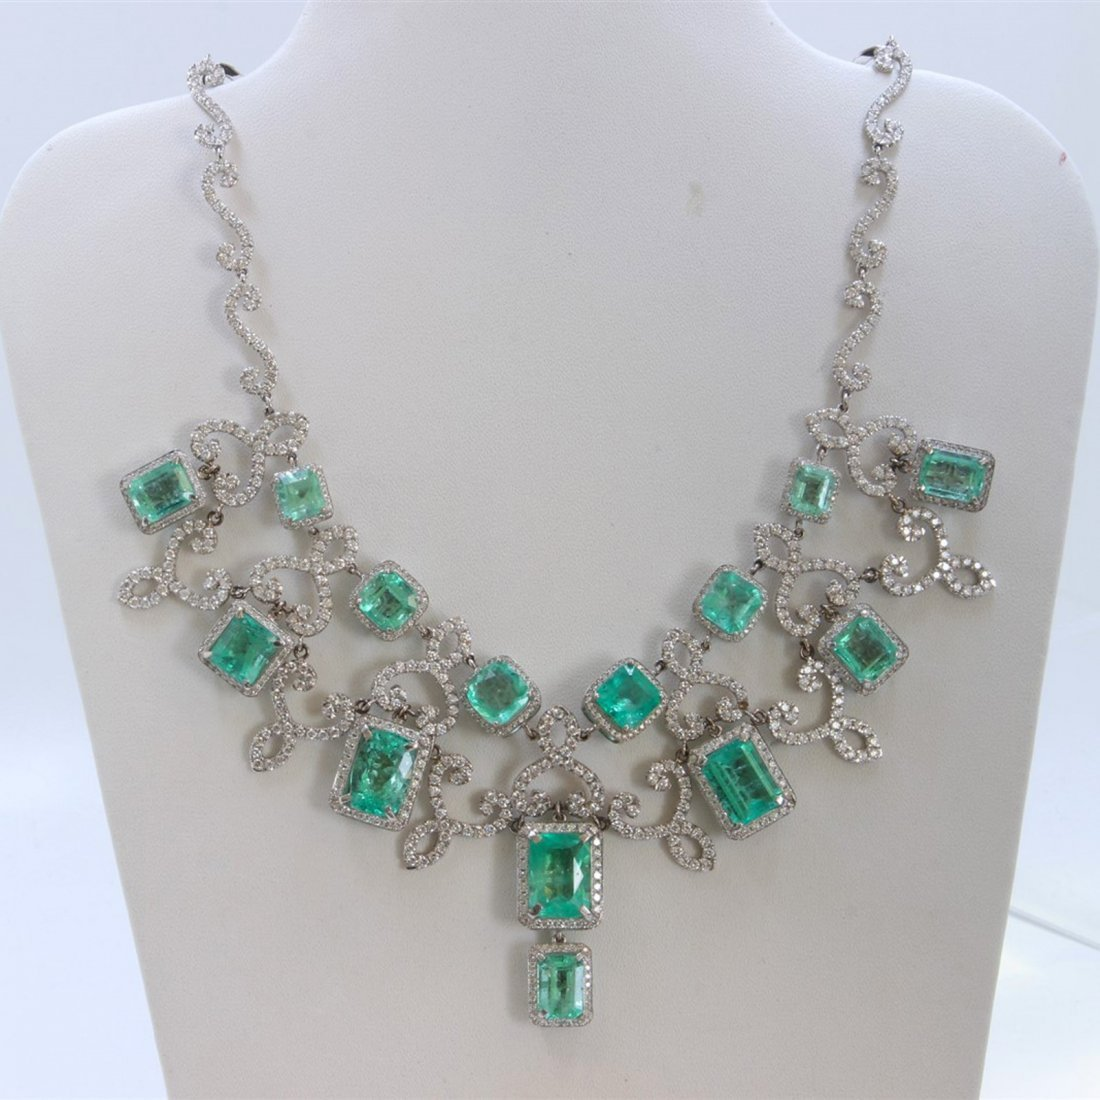 18K WHITE GOLD EMERALD NECKLACE - 2